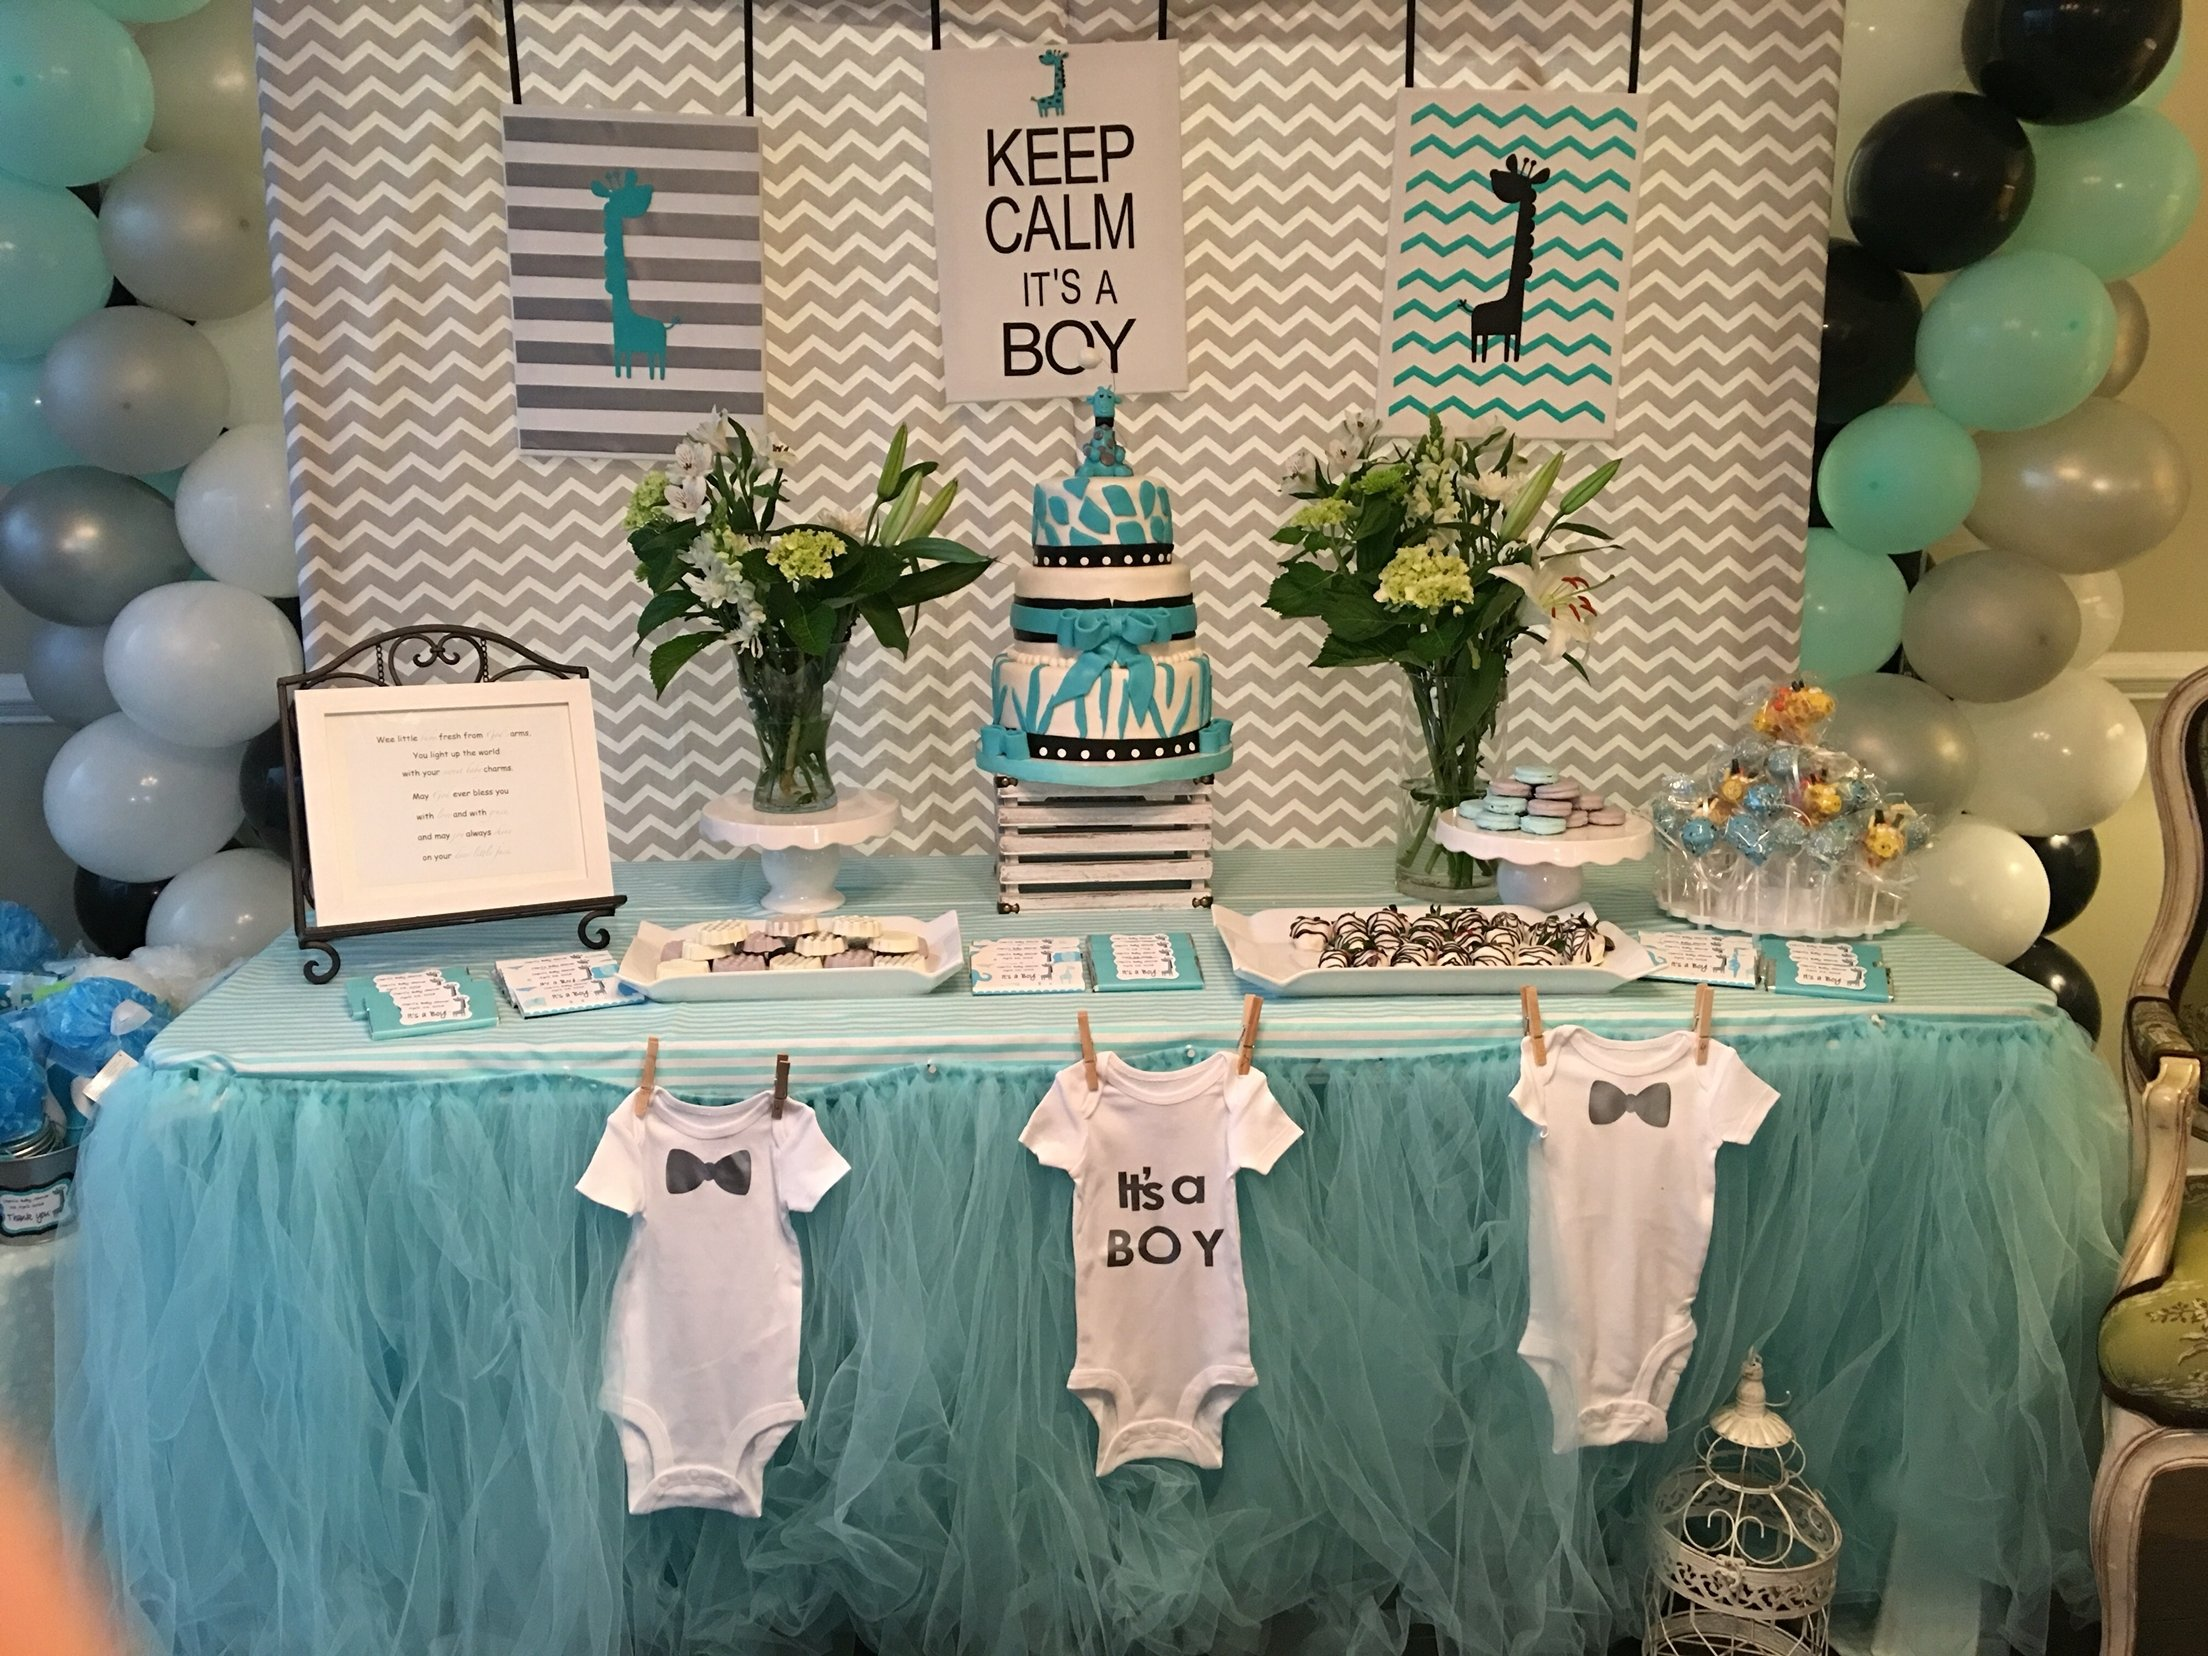 10 Great Ideas For Baby Boy Shower creative ideas baby boy shower decorations homely uptown giraffe 2021